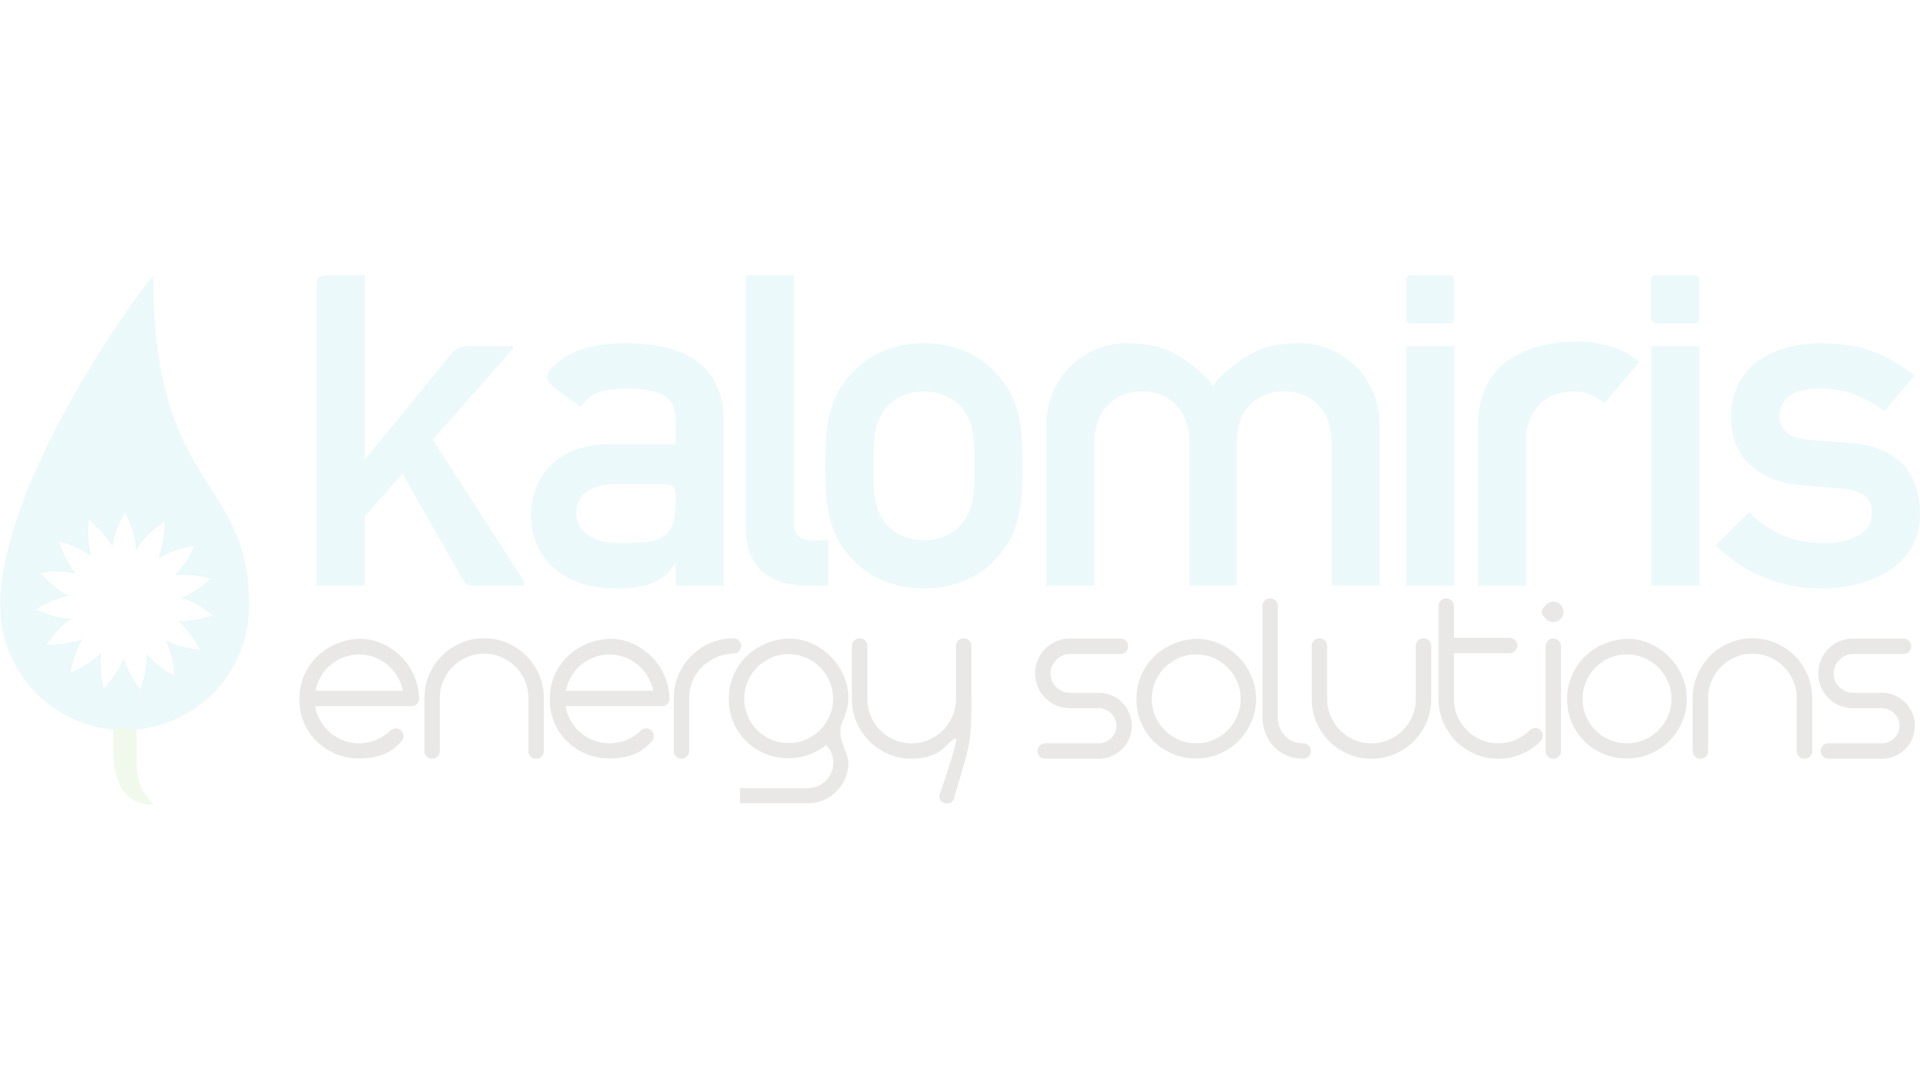 Ceiling Fan CASAFAN Eco Gamma 103 BU-AH Beech / Maple 40.5 (103cm)